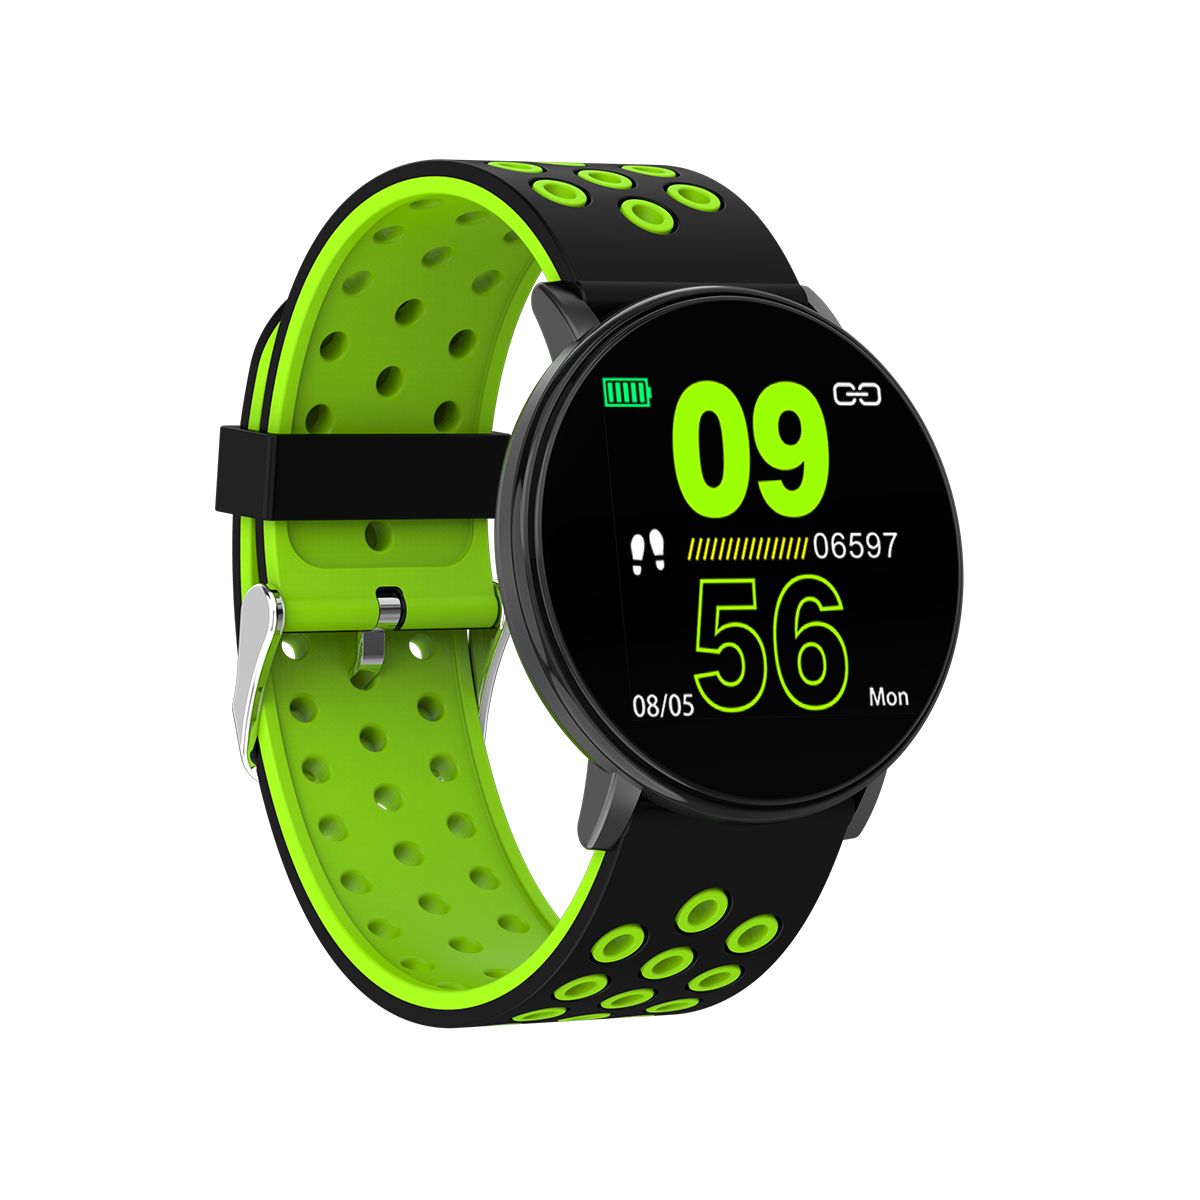 New Smartwatch Waterproof Sports for iphone Smart watch phone Heart Rate Monitor Blood Pressure Functions For Women men